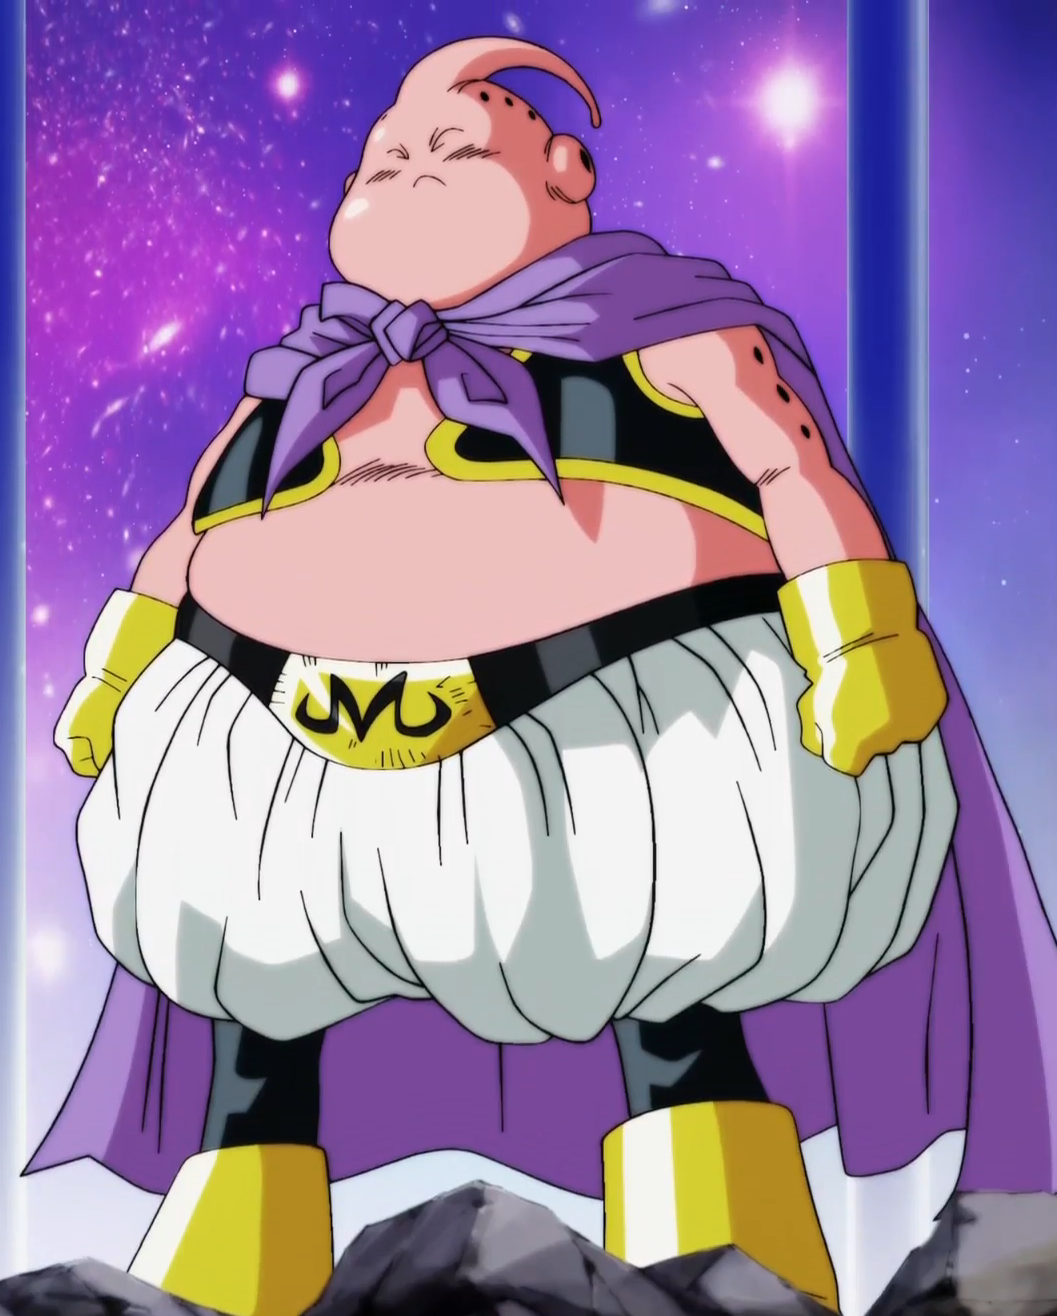 Mr satan and buu become friends before dating